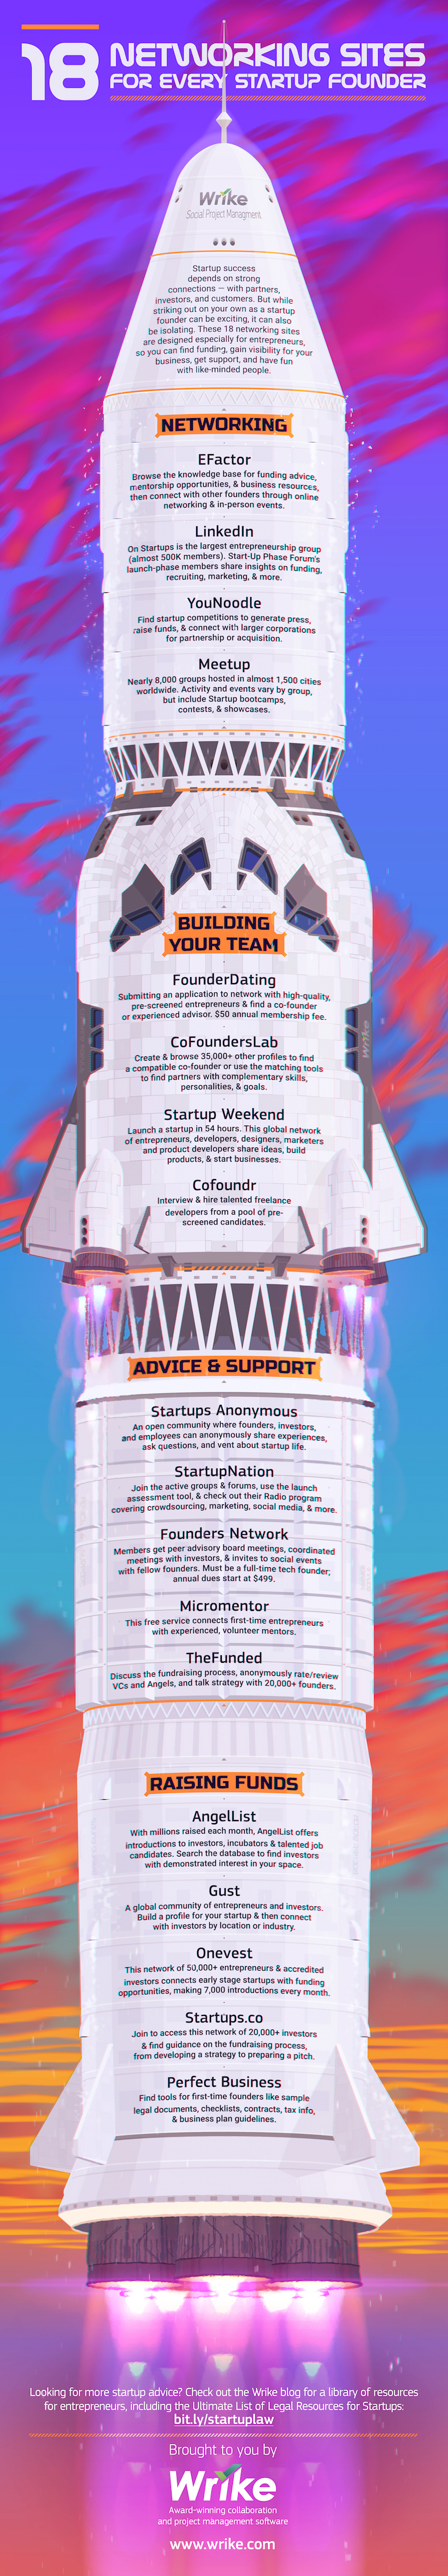 18 Top Networking Sites for Startup Founders (Infographic)